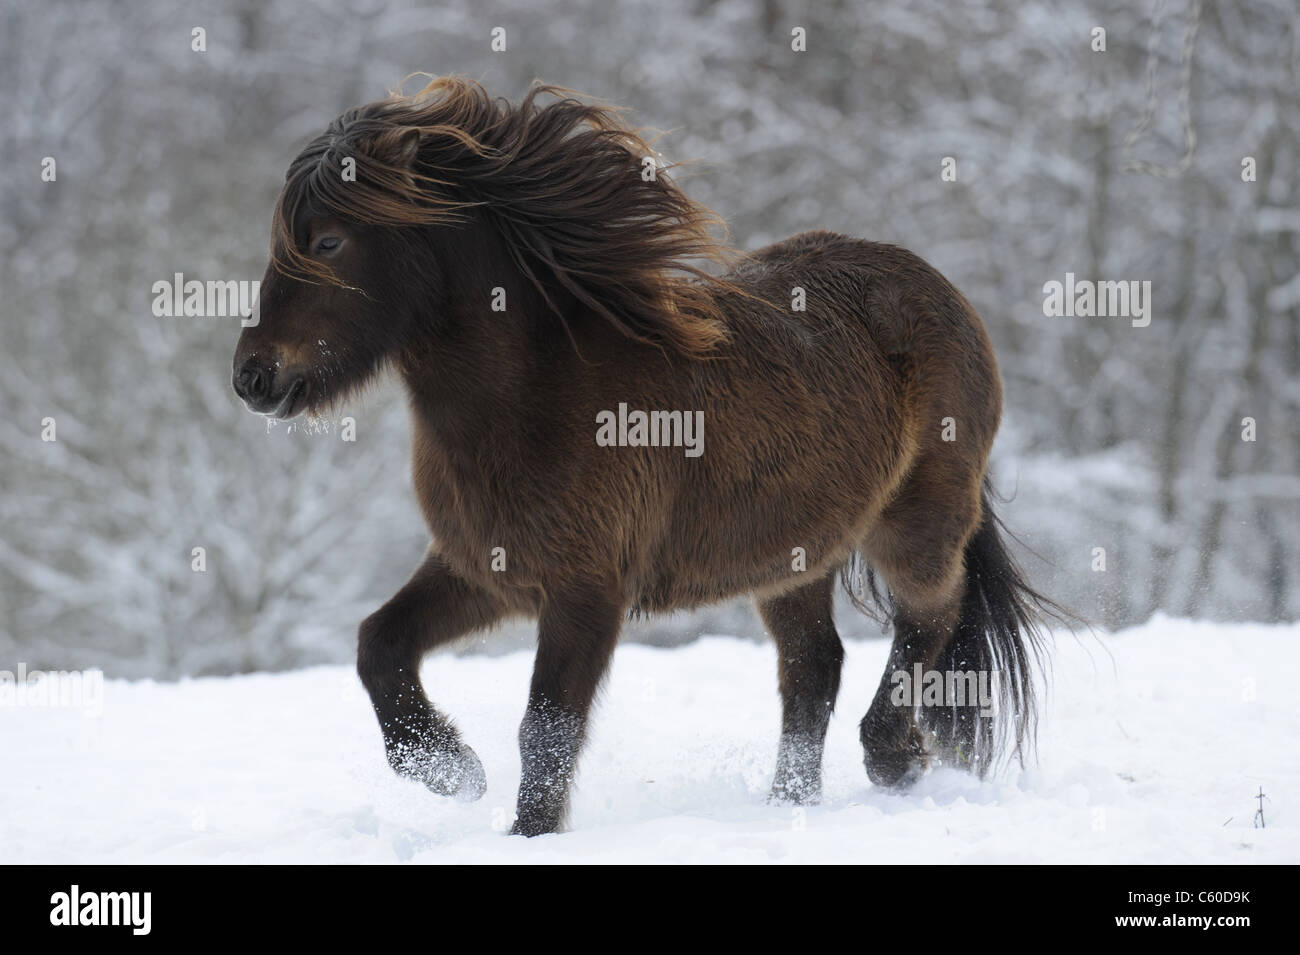 Icelandic Horse (Equus ferus caballus), mare in a trot on a snowy meadow. - Stock Image